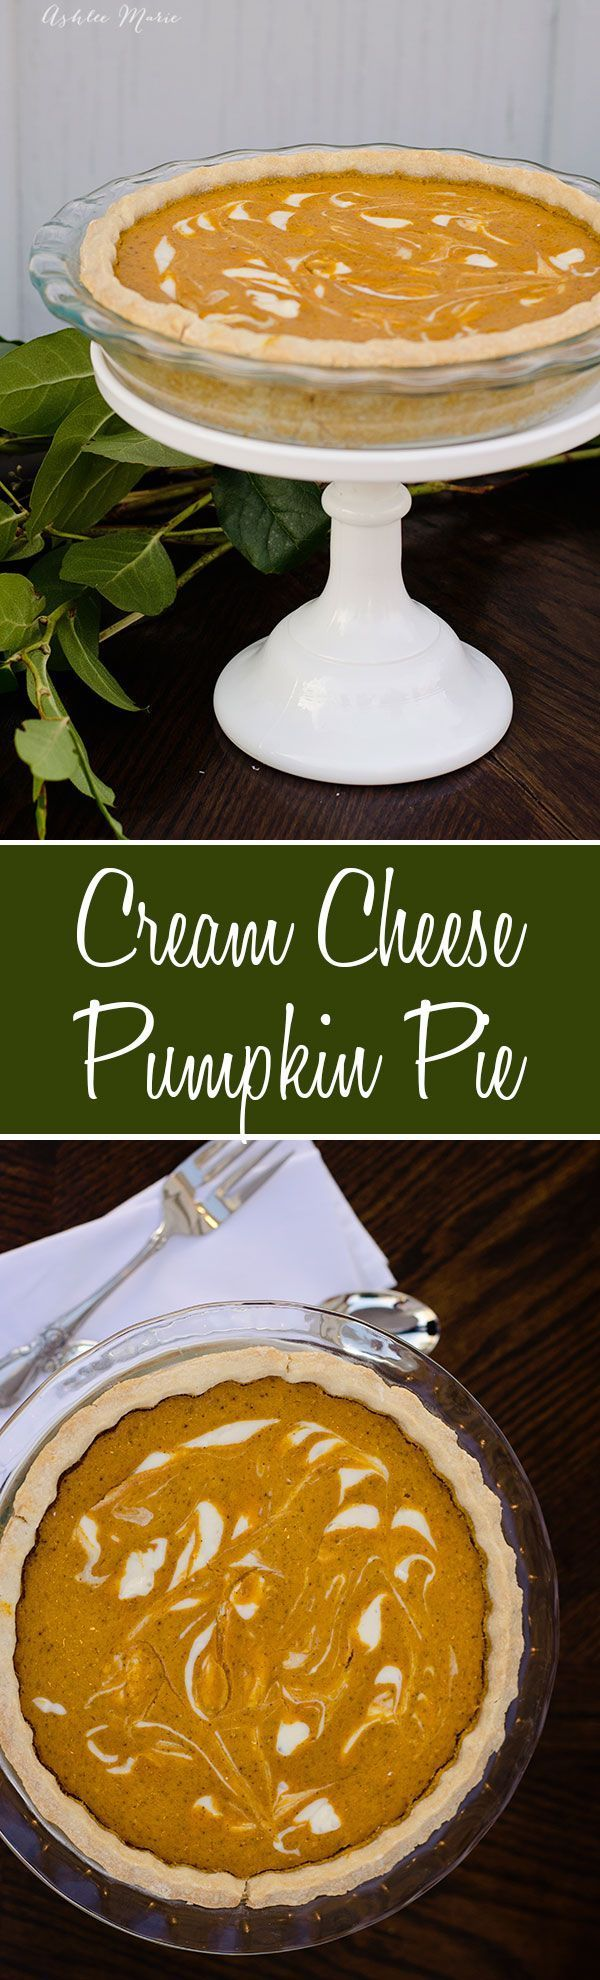 this is a unique twist on the classic pumpkin pie, the cream cheese that you add to this recipe adds so much to the texture, creating a slight cheesecake type softens to pumpkin pie